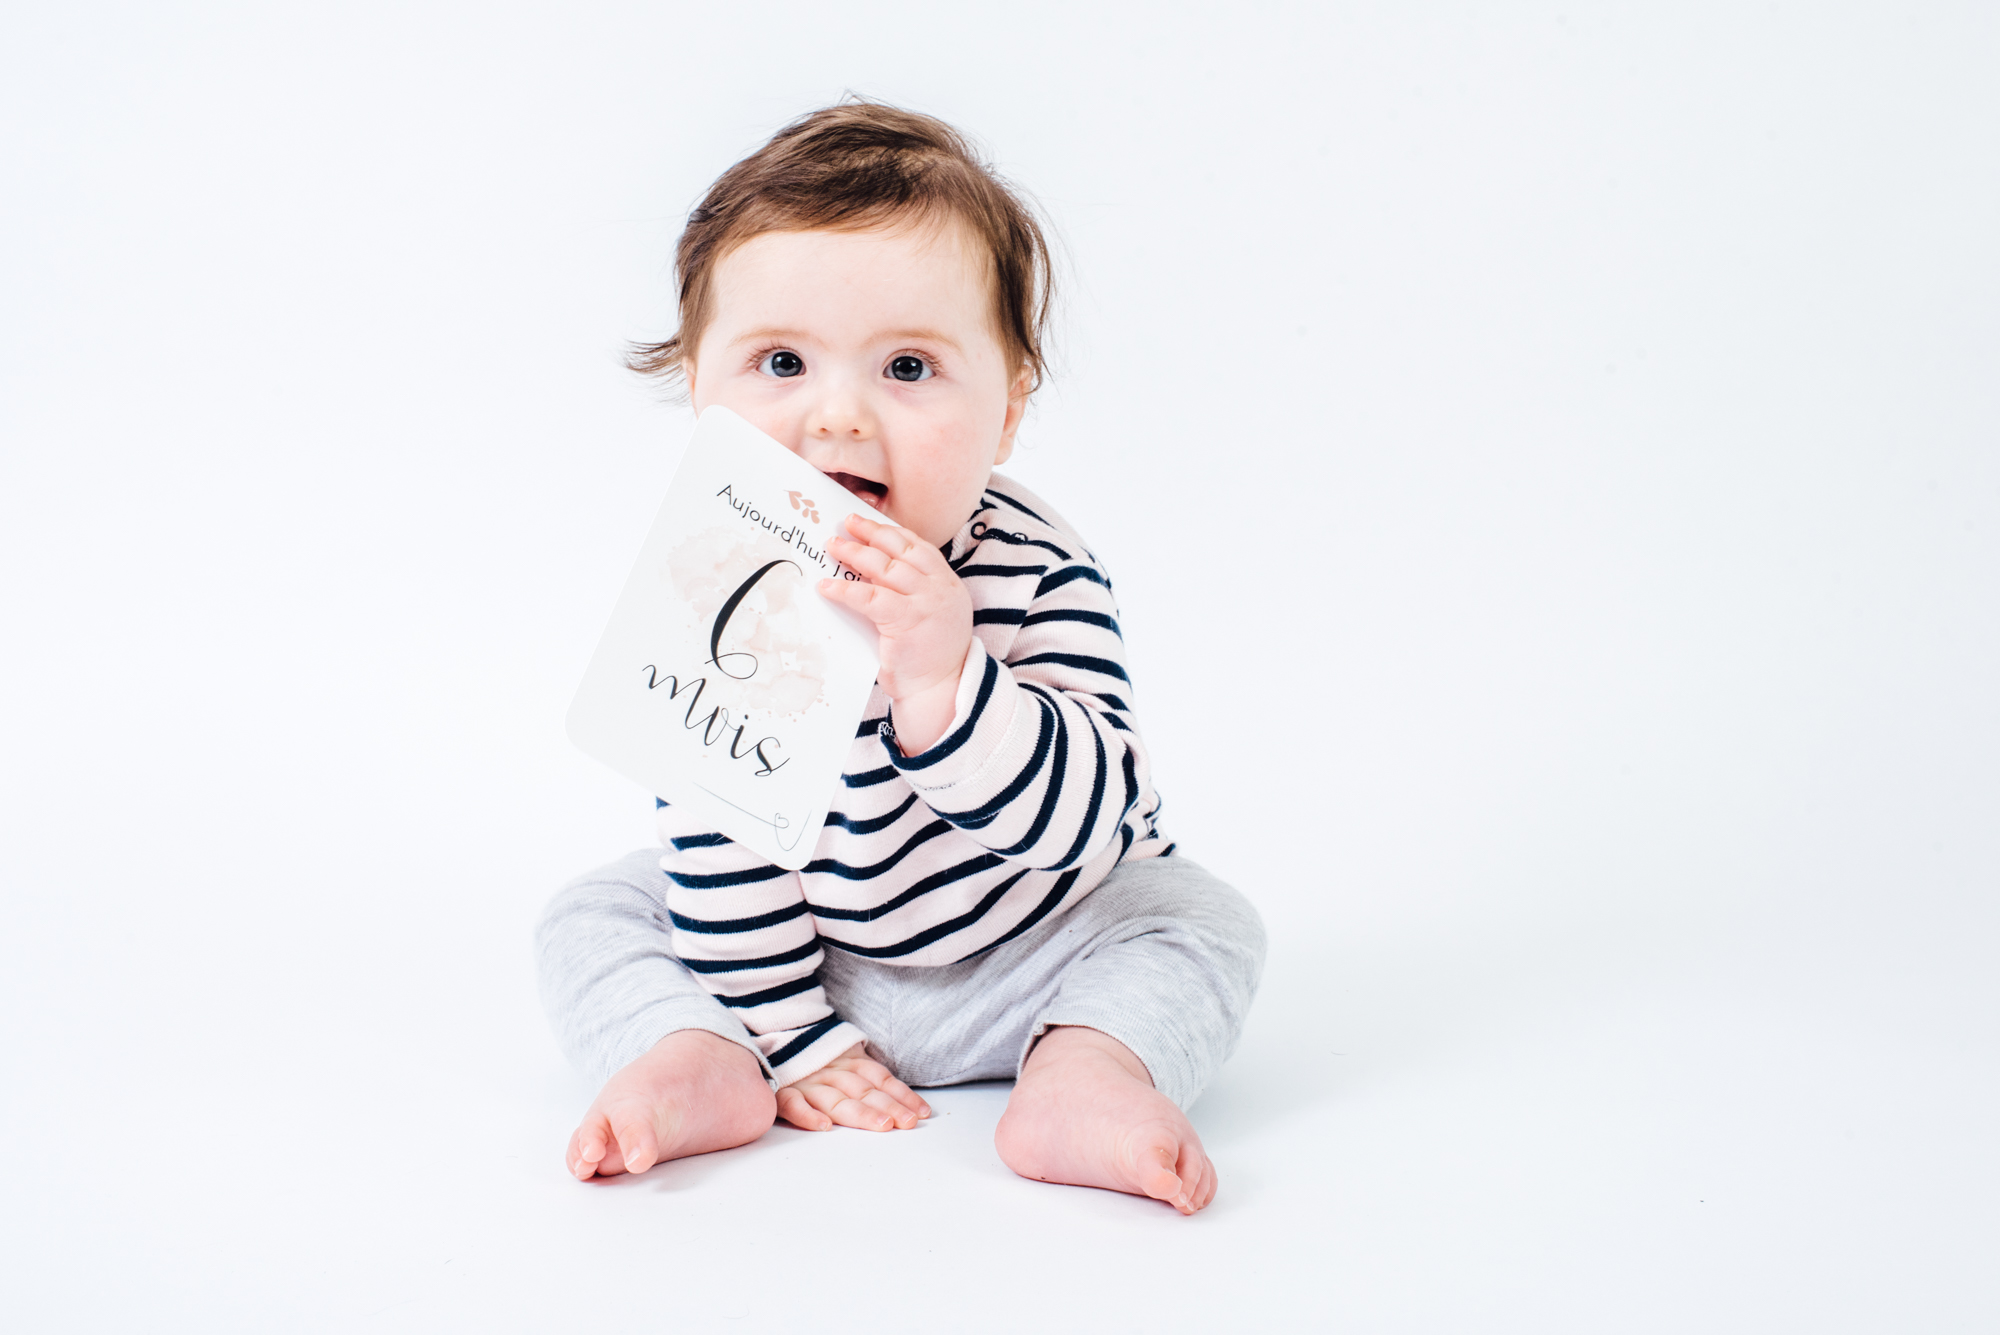 phototographe bébé studio paris